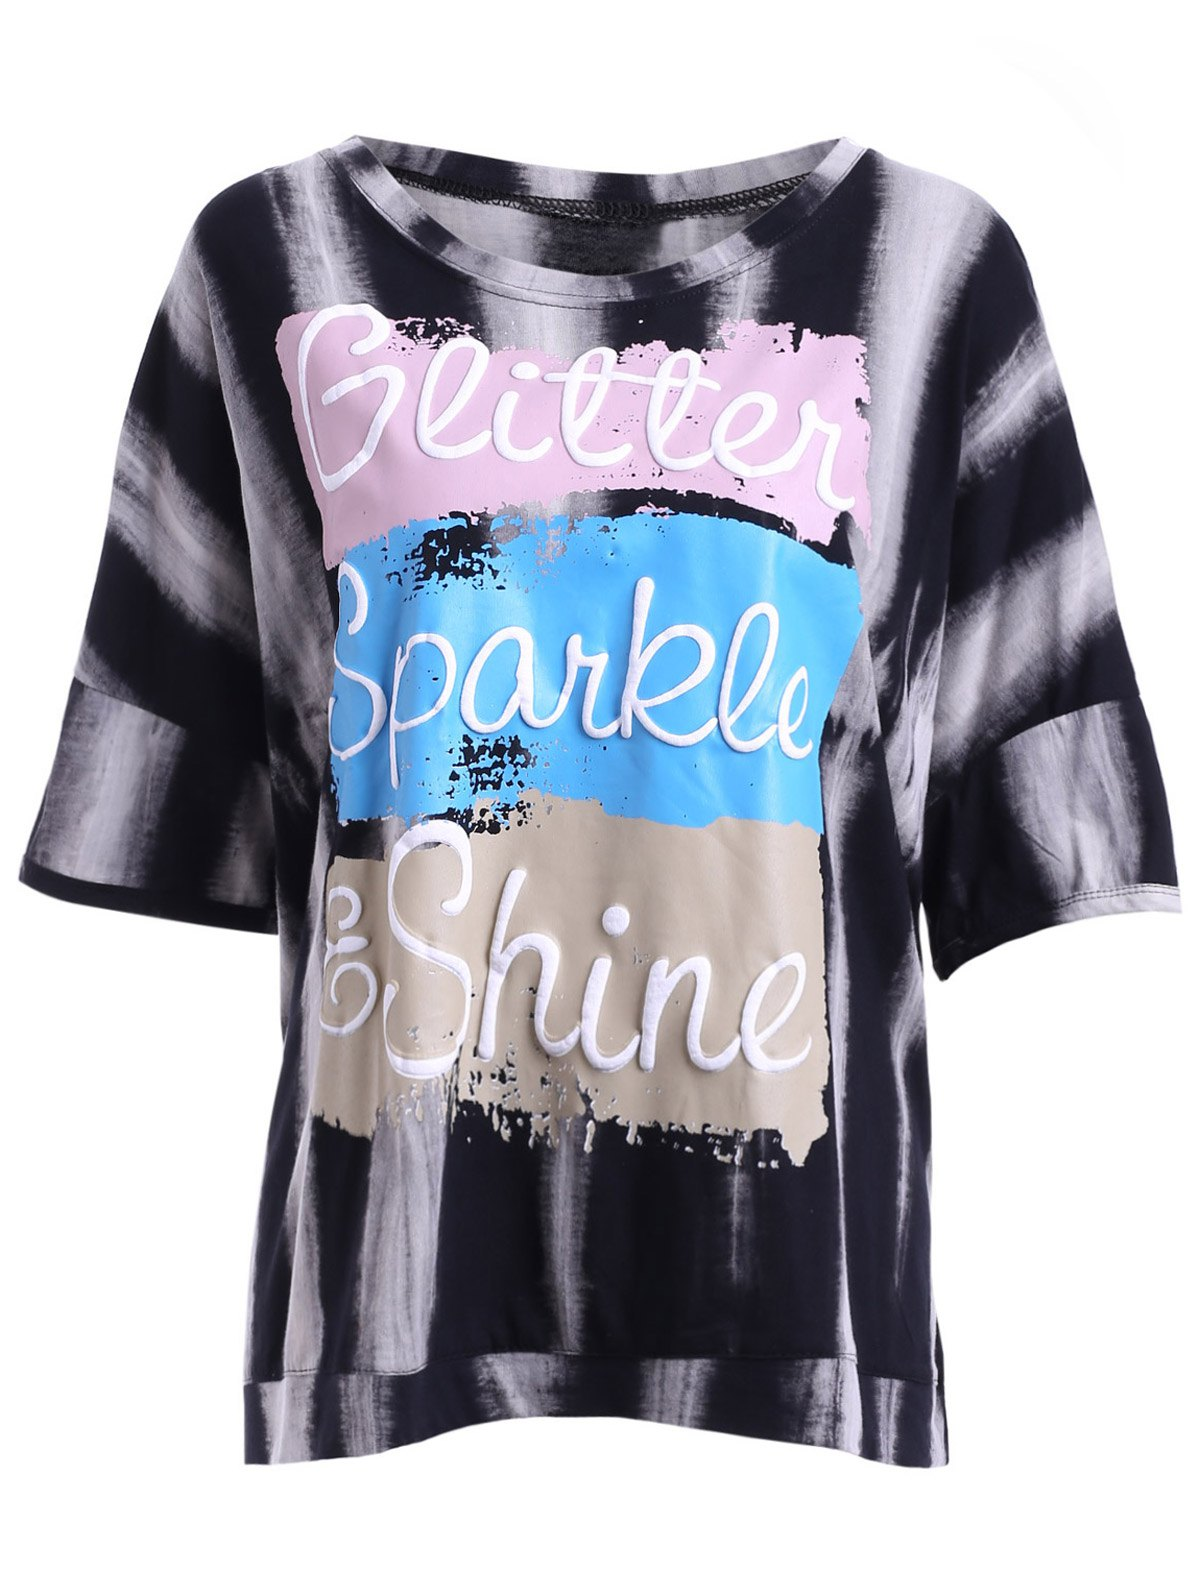 Stylish Women's Scoop Neck Colorful Lettern Print Short Sleeves T-Shirt - BLACK ONE SIZE(FIT SIZE XS TO M)